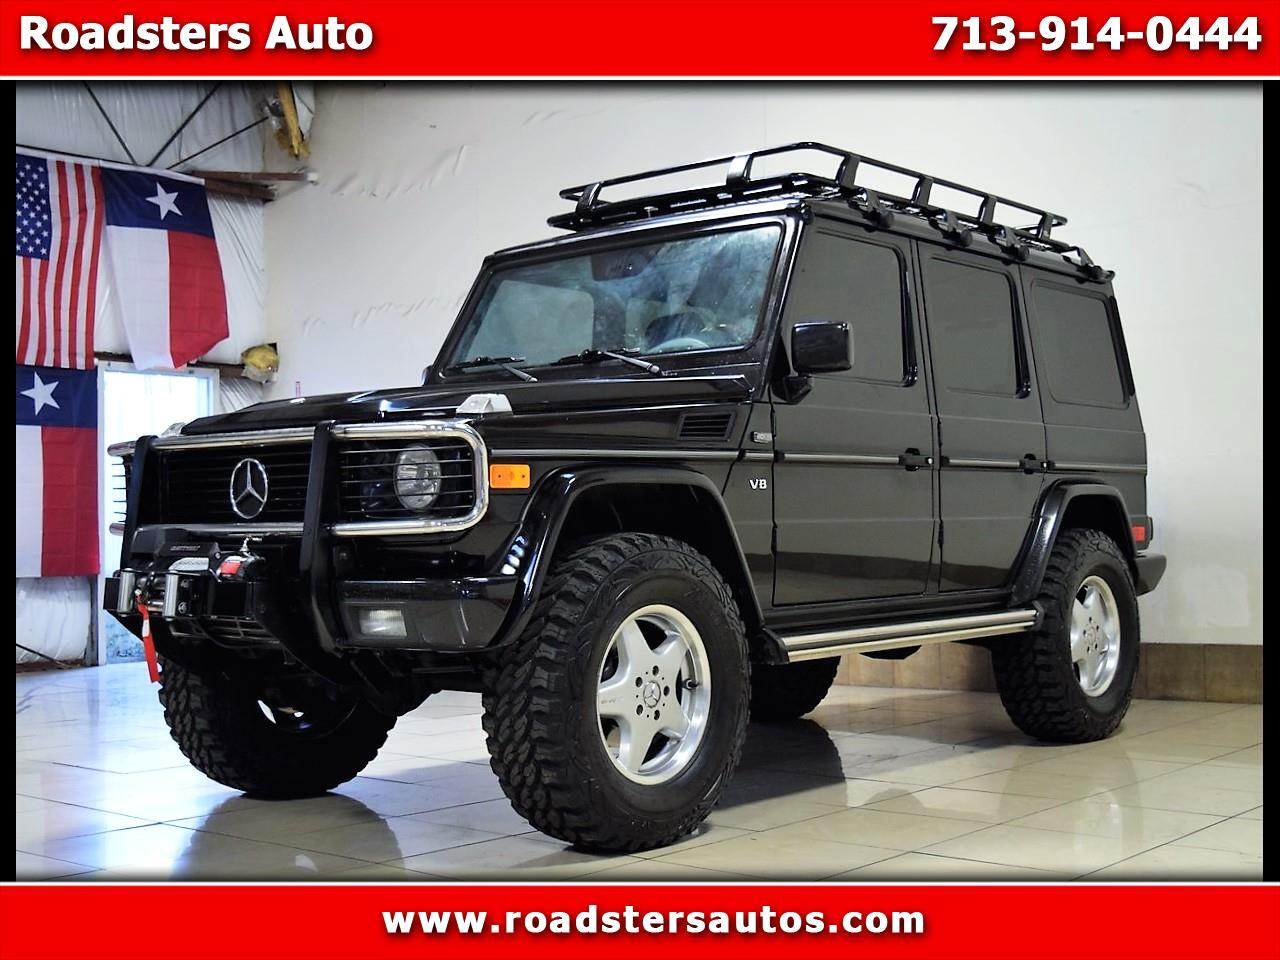 Used 2002 Mercedes Benz G Class G500 Custom Lifted Safari For Sale In Houston Tx 77063 Roadsters Auto